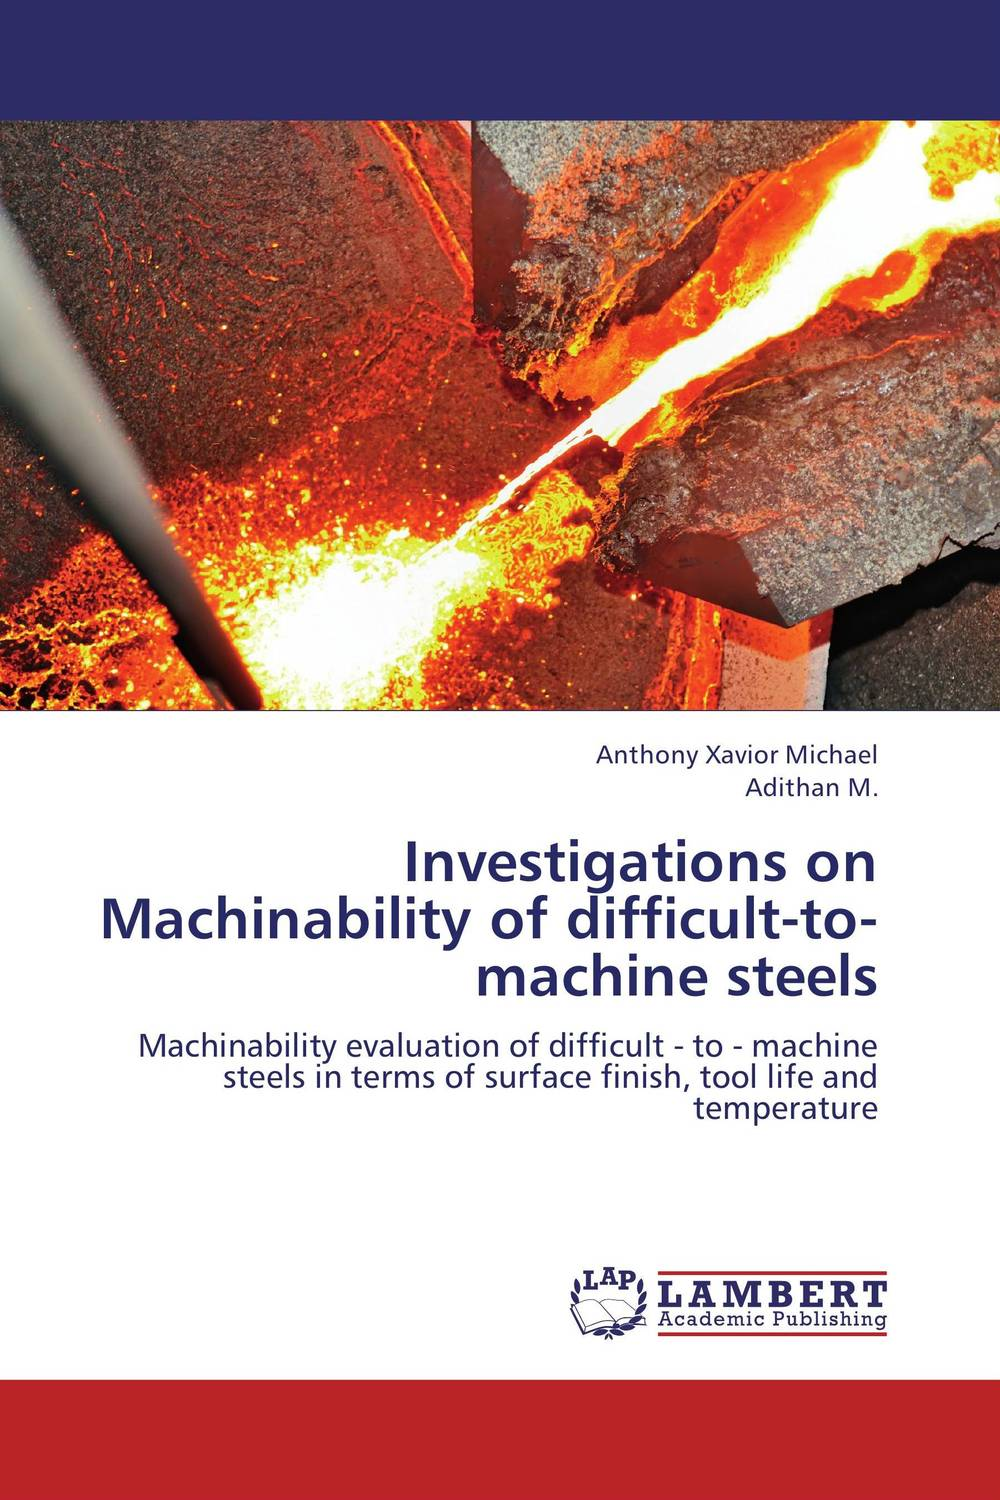 Investigations on Machinability of difficult-to-machine steels investigations on machinability of difficult to machine steels